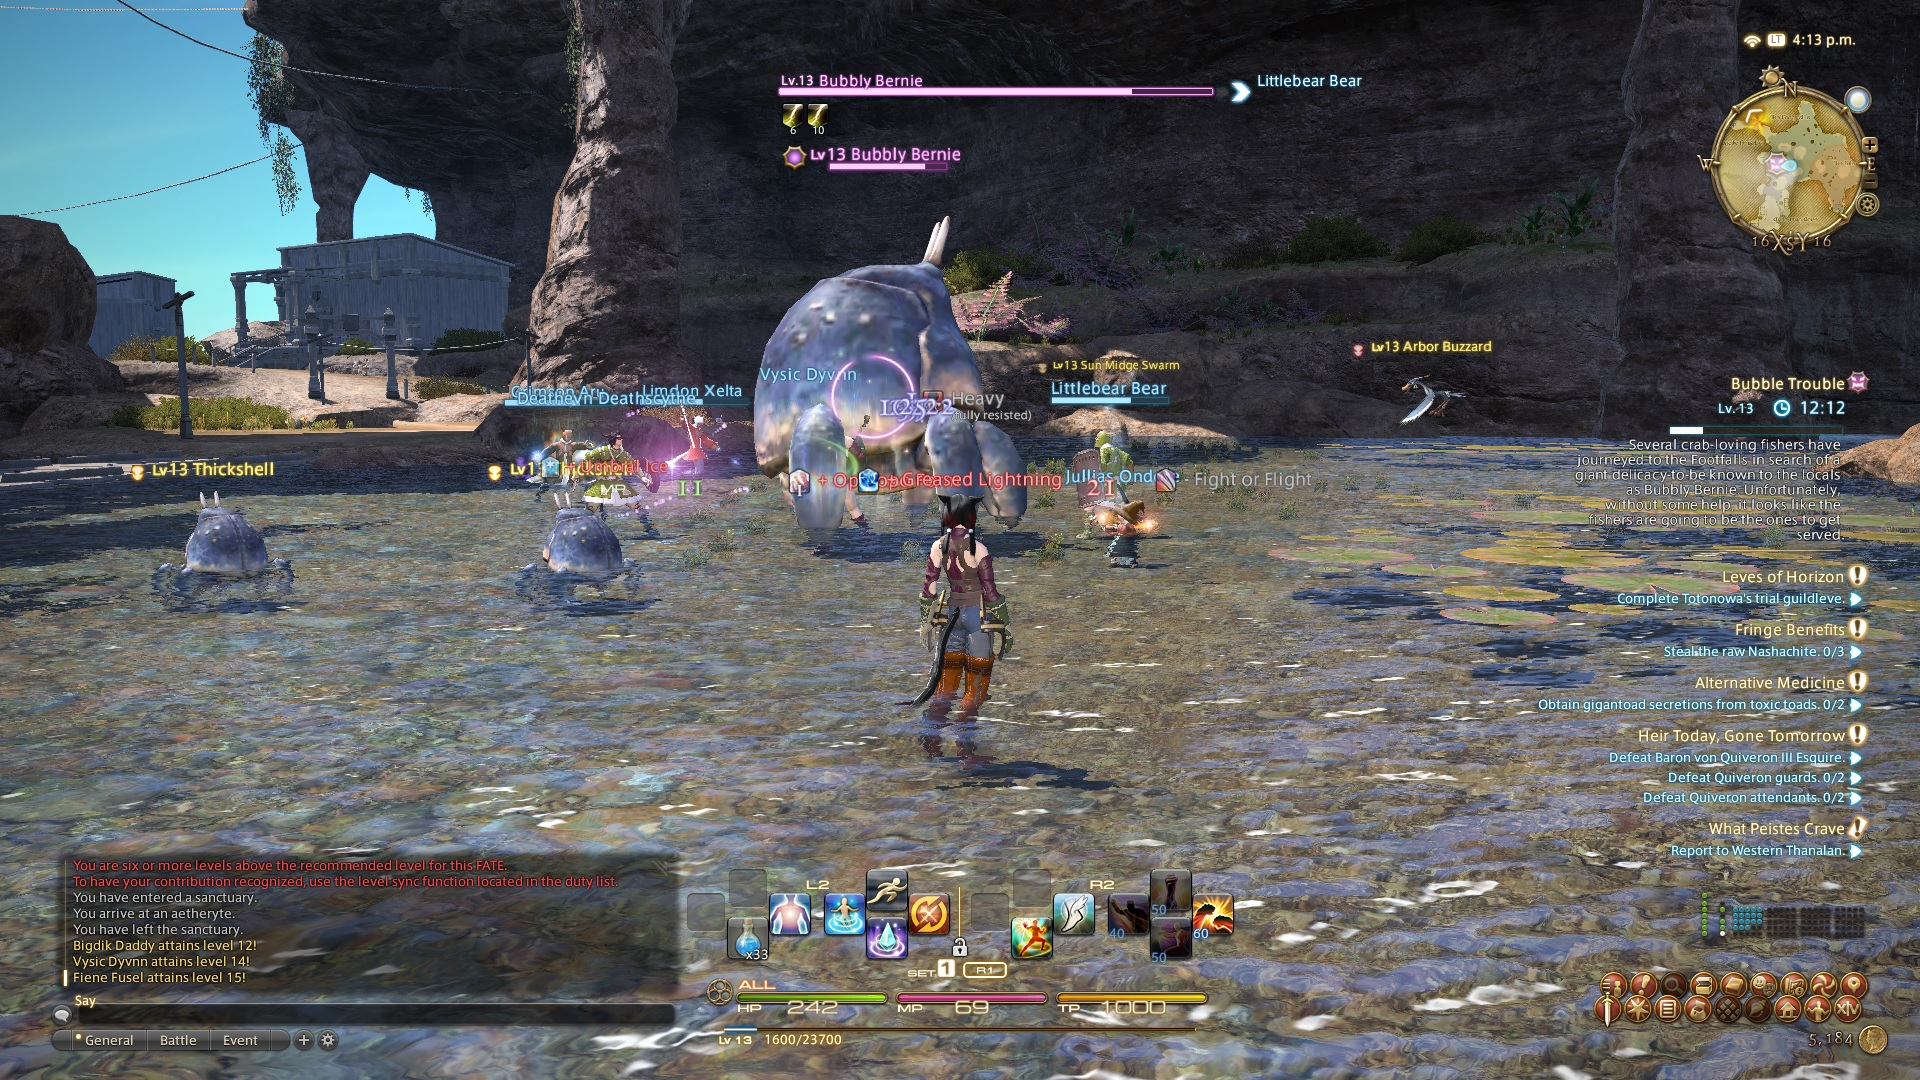 kachiko ffxiv limsa through tonight well screenshots lifted phase beta